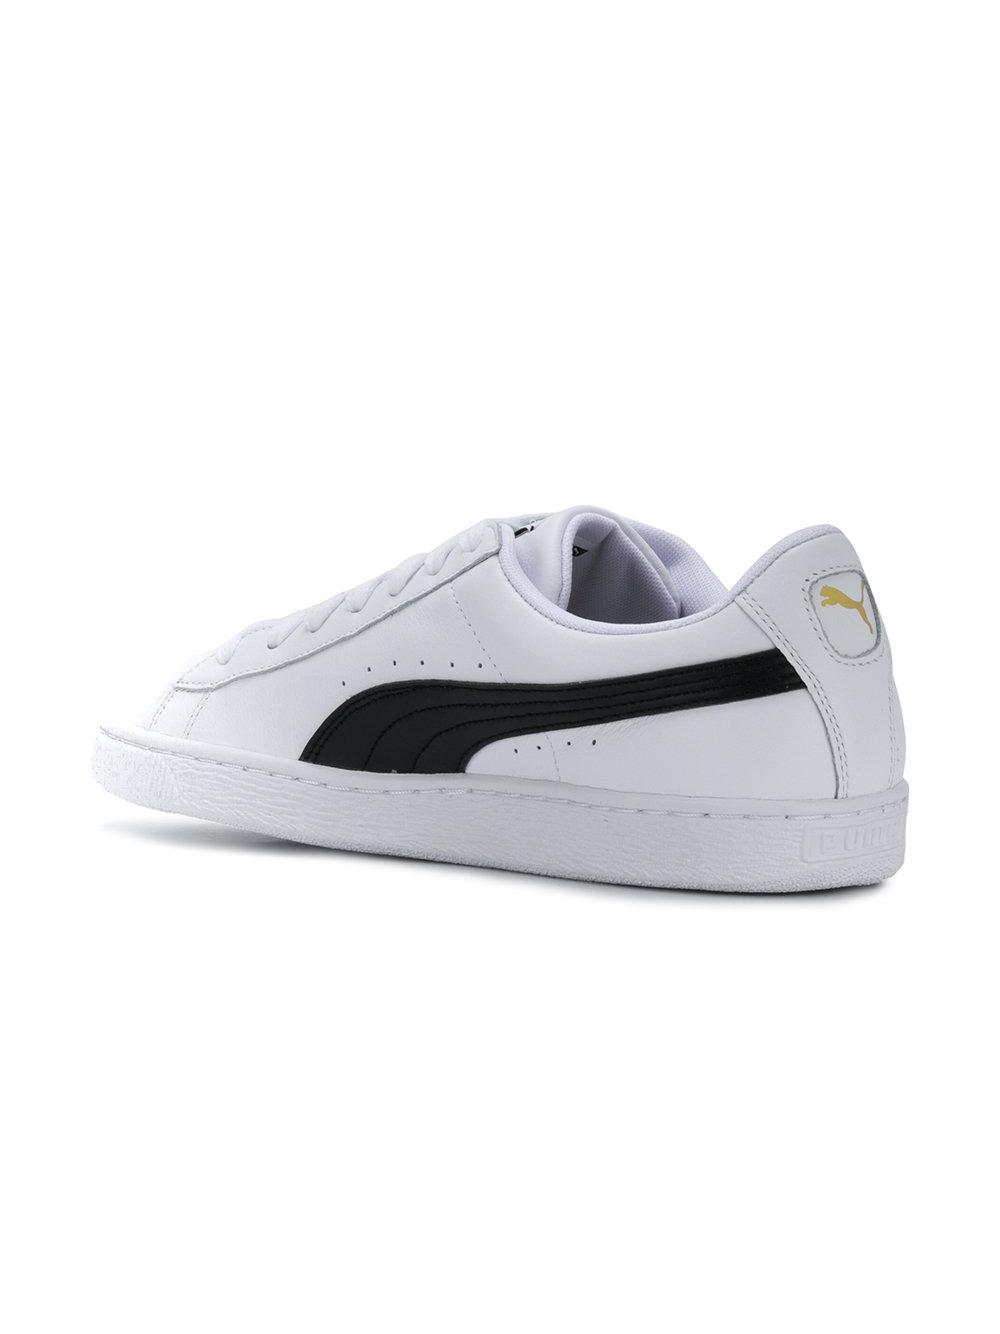 super popular 05861 2e508 PUMA Leather Heritage Basket Classic Sneakers in White for ...